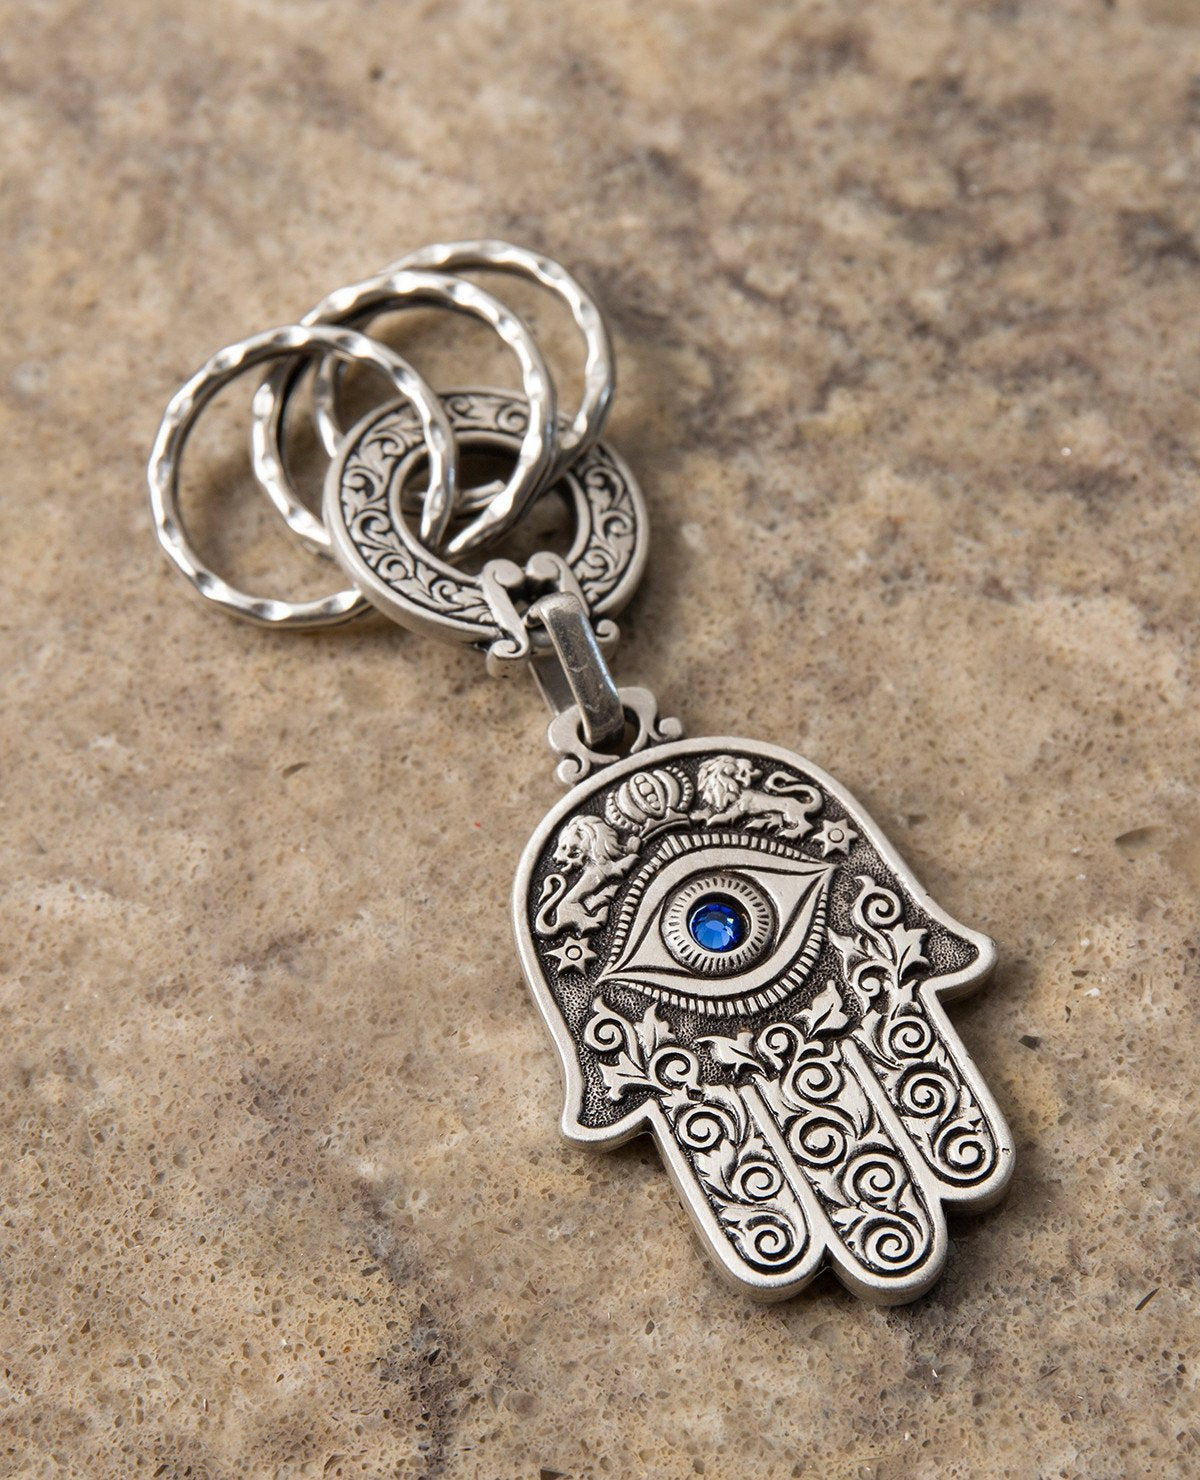 A double sided Hamsa keychain coated in sterling silver. On one side is a big eye embedded with a blue colored Swarovski crystal and embossed lions. On the other side are embossed birds, pomegranates, fish and grapes. The whole Hamsa is decorated in a filigree like style. The connecting links and the key rings are massive and strong. It's fun to connect our most important keys to it and most definitely to grant our loved ones with such a beautiful Hamsa, blessed with the many icons of good fortune, protecti